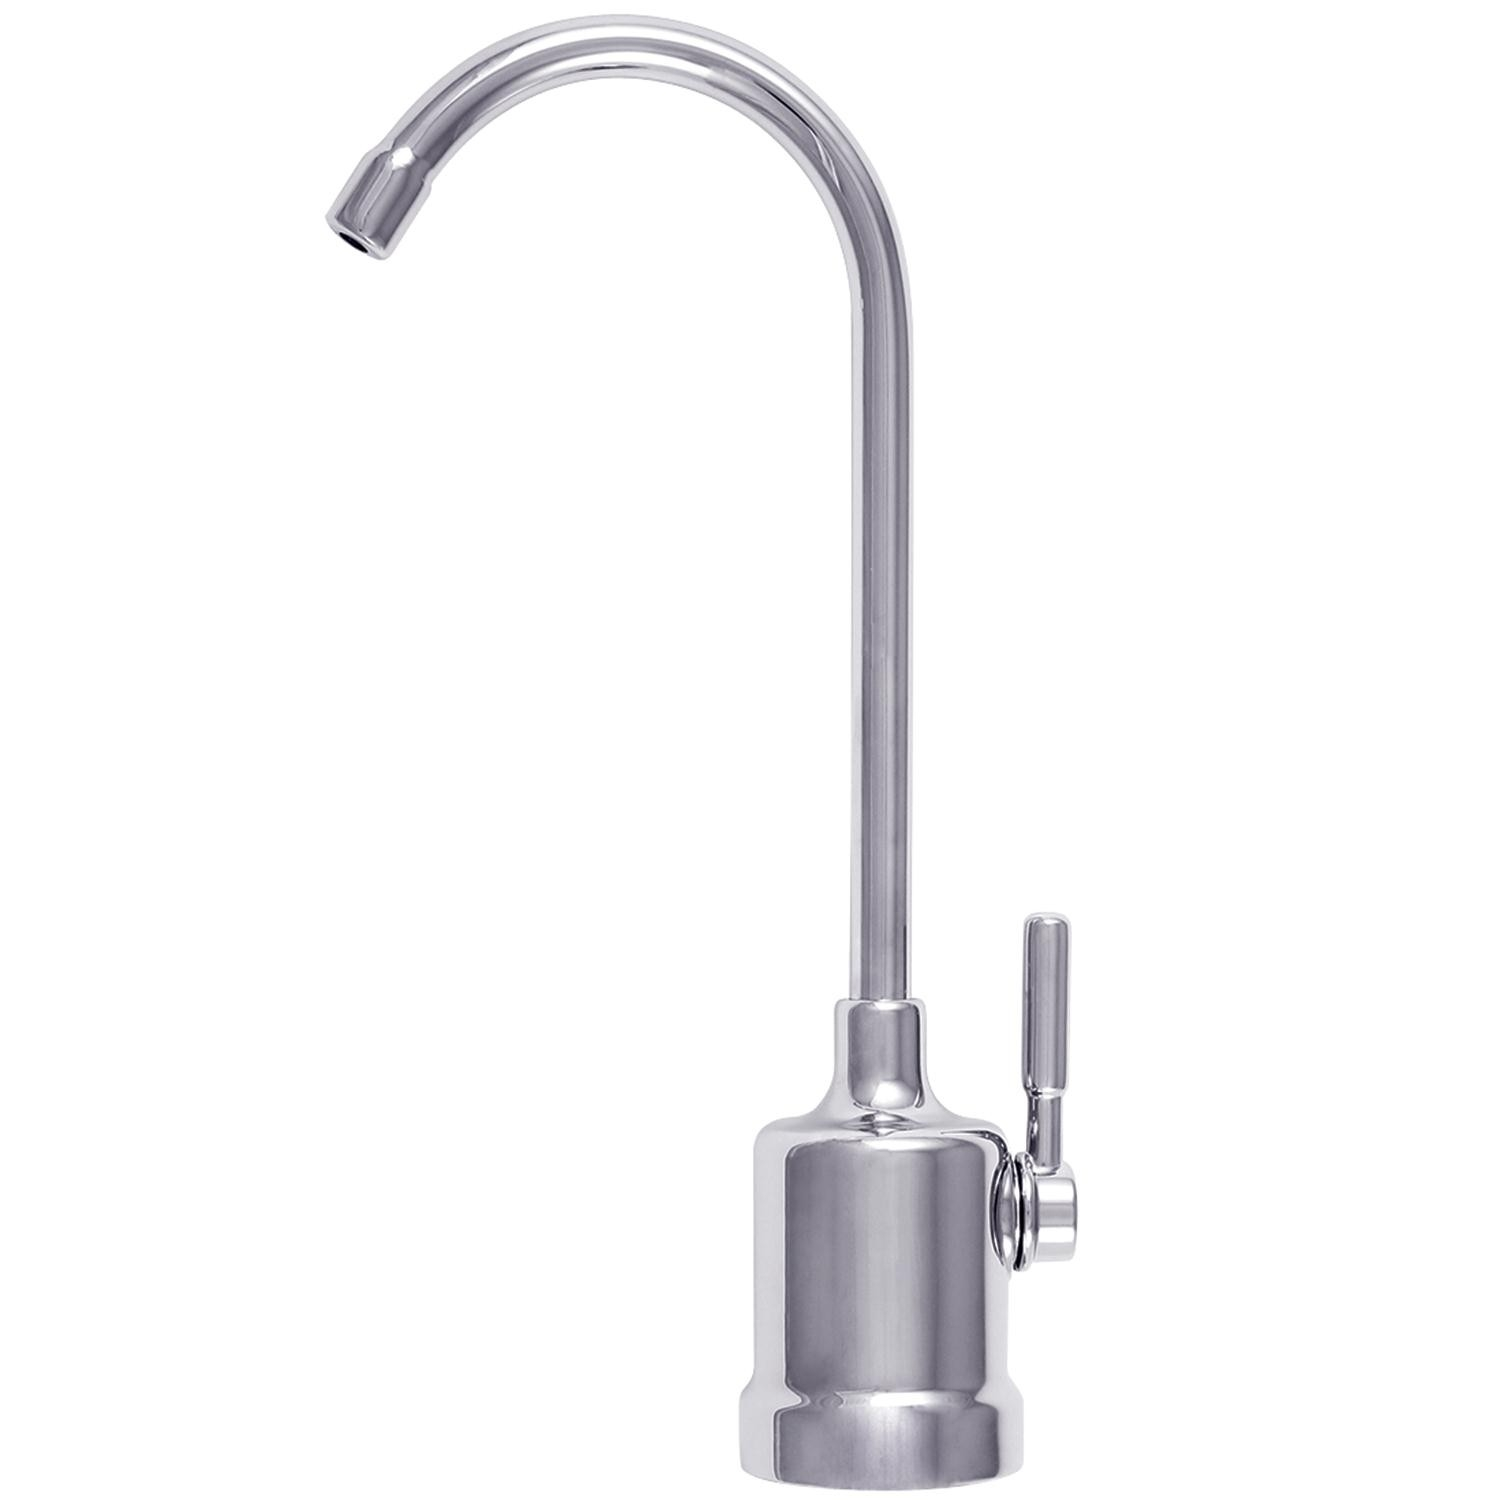 Ideas, reverse osmosis faucet with dishwasher air gap reverse osmosis faucet with dishwasher air gap reverse osmosis faucet with dishwasher air gap bathroom ideas 1500 x 1500  .